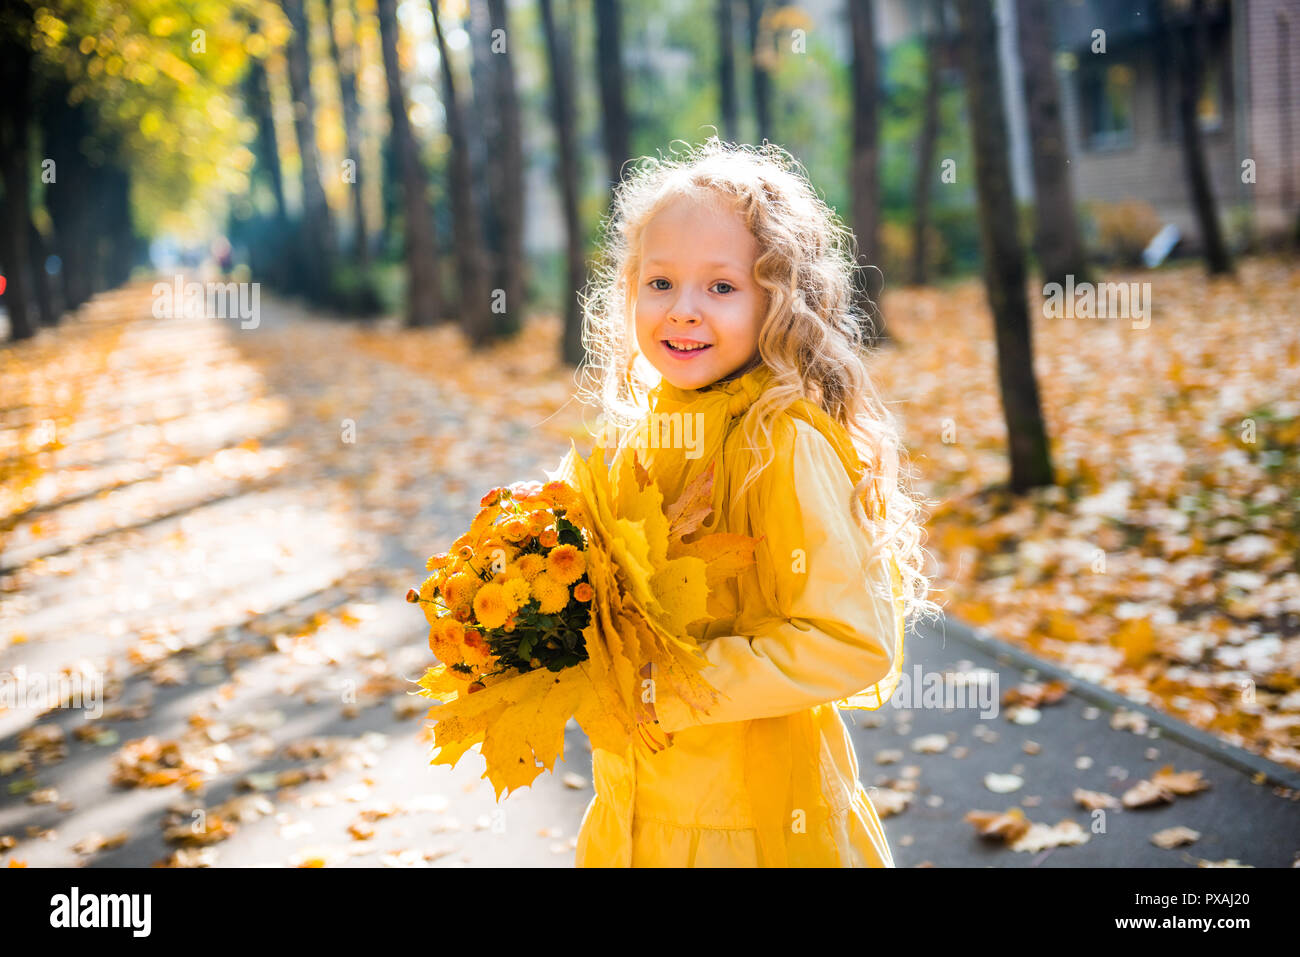 Little beautiful girl with blond hair in autumn background Stock Photo